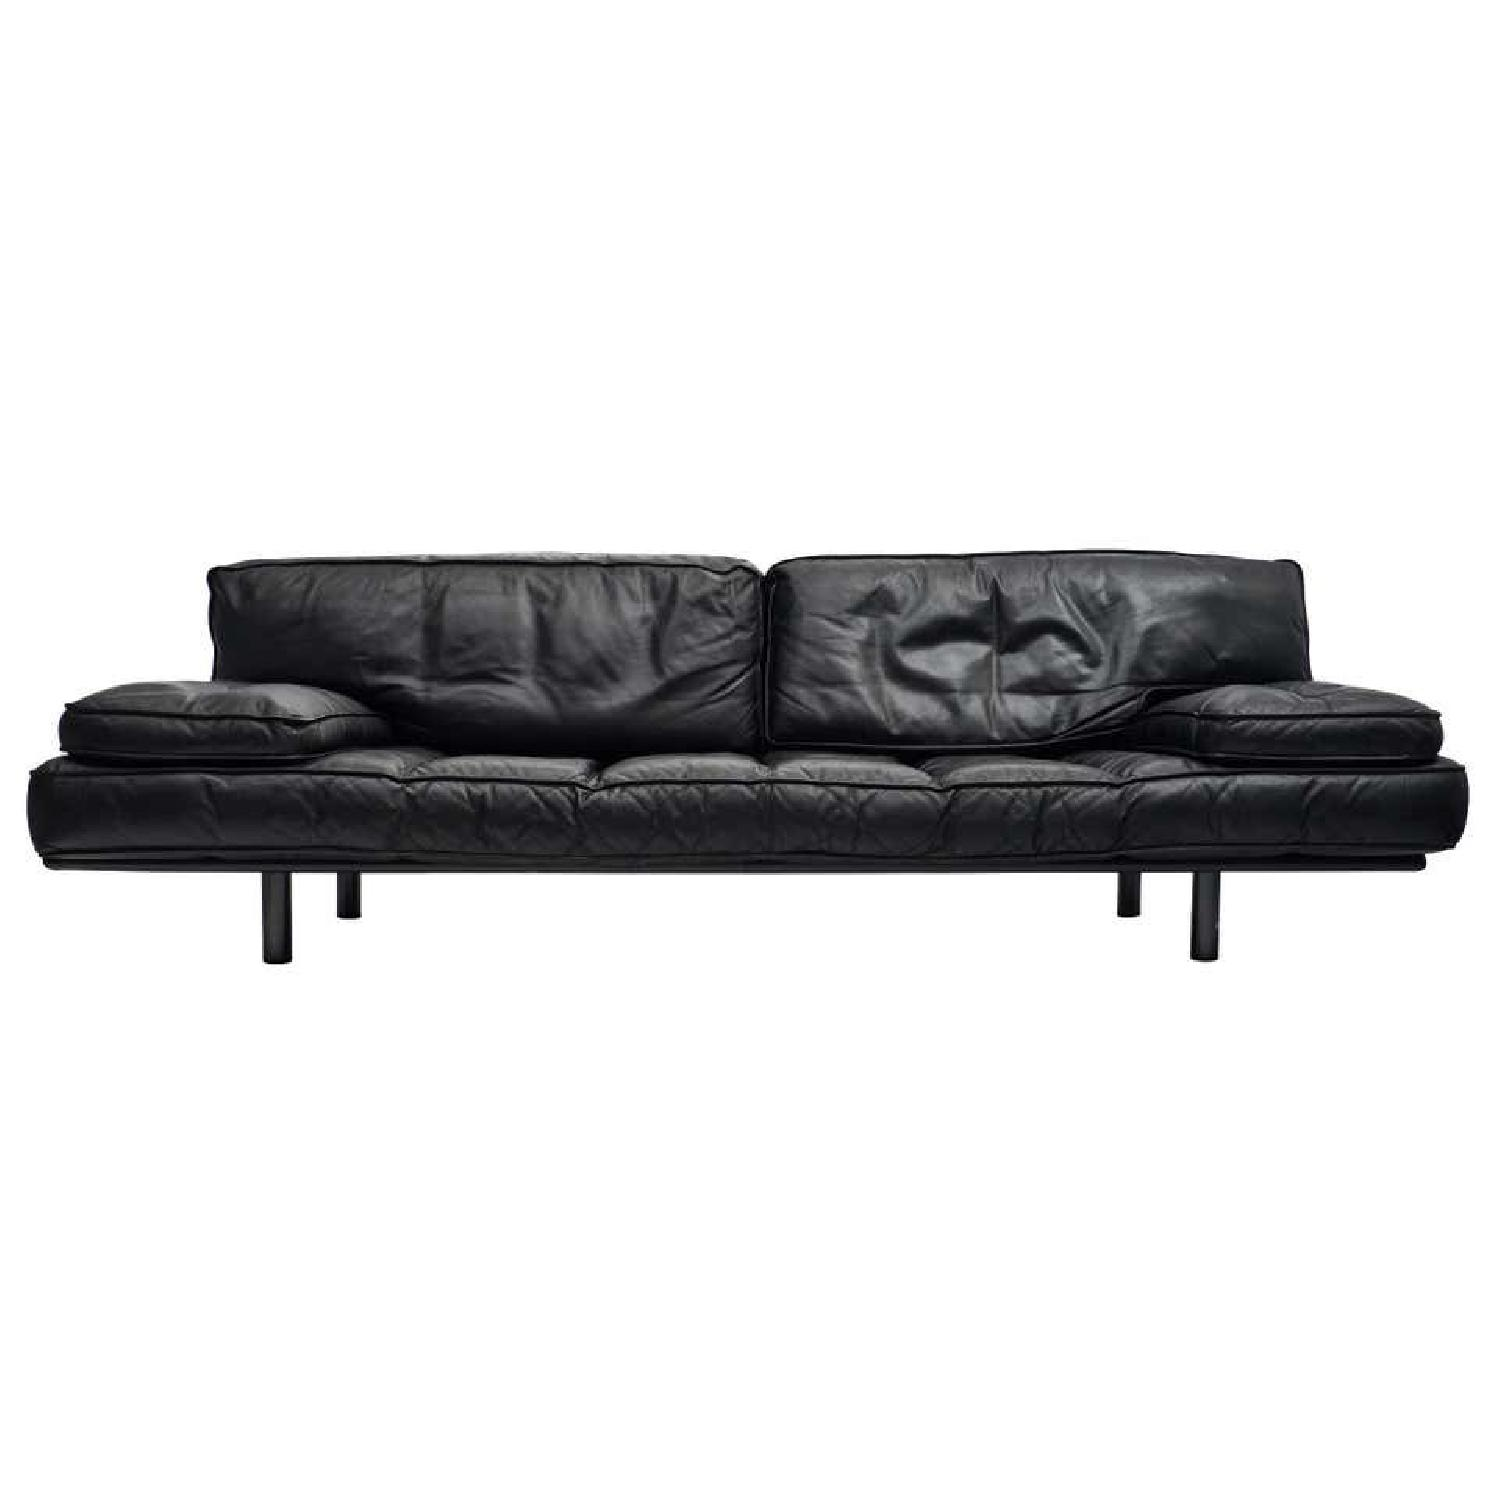 Zanotta Black Leather Sofa - image-8